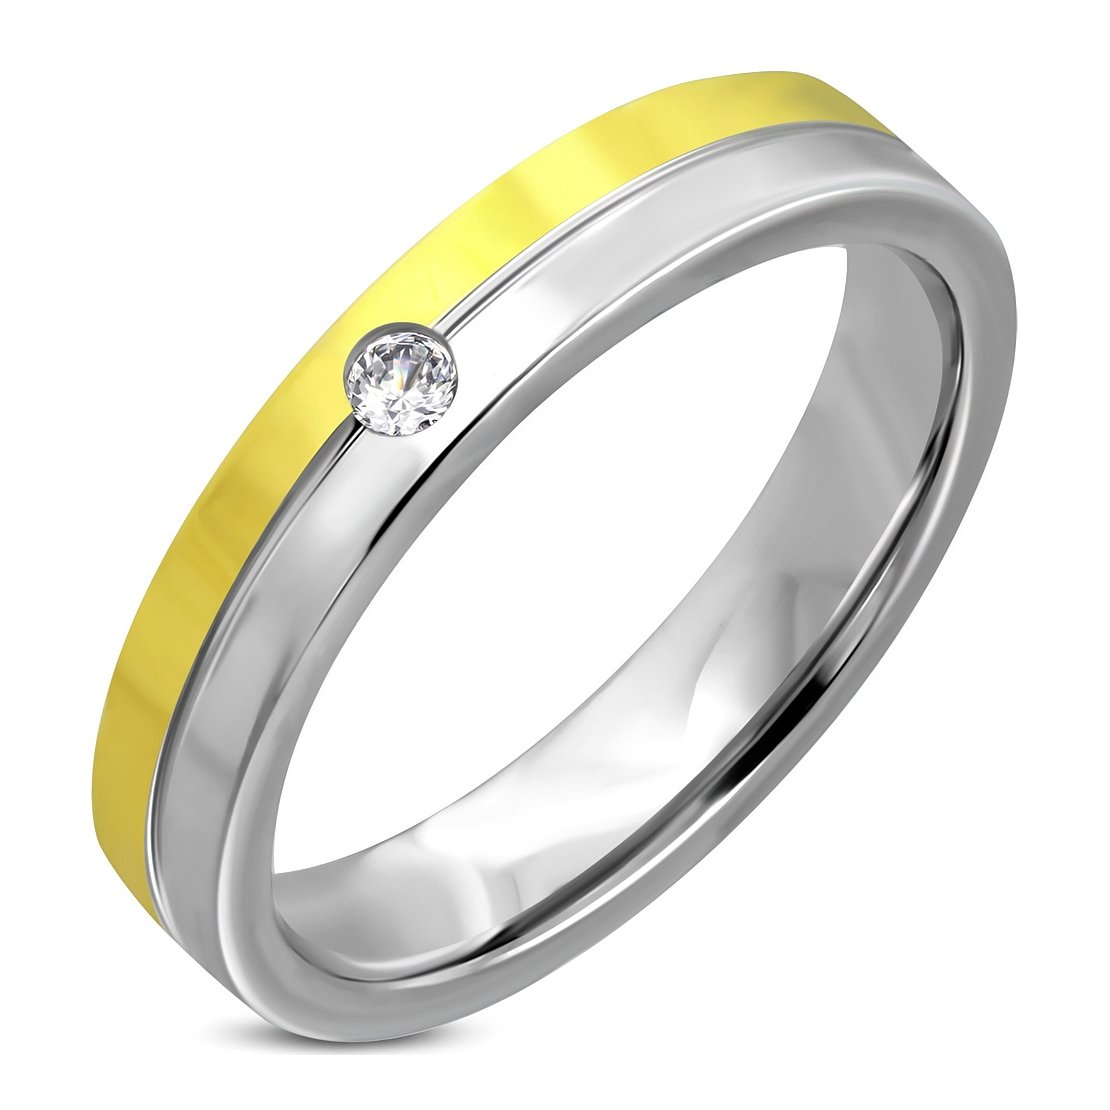 Stainless Steel 2 Color Center Grooved Comfort Fit Wedding Flat Band Ring with Clear CZ